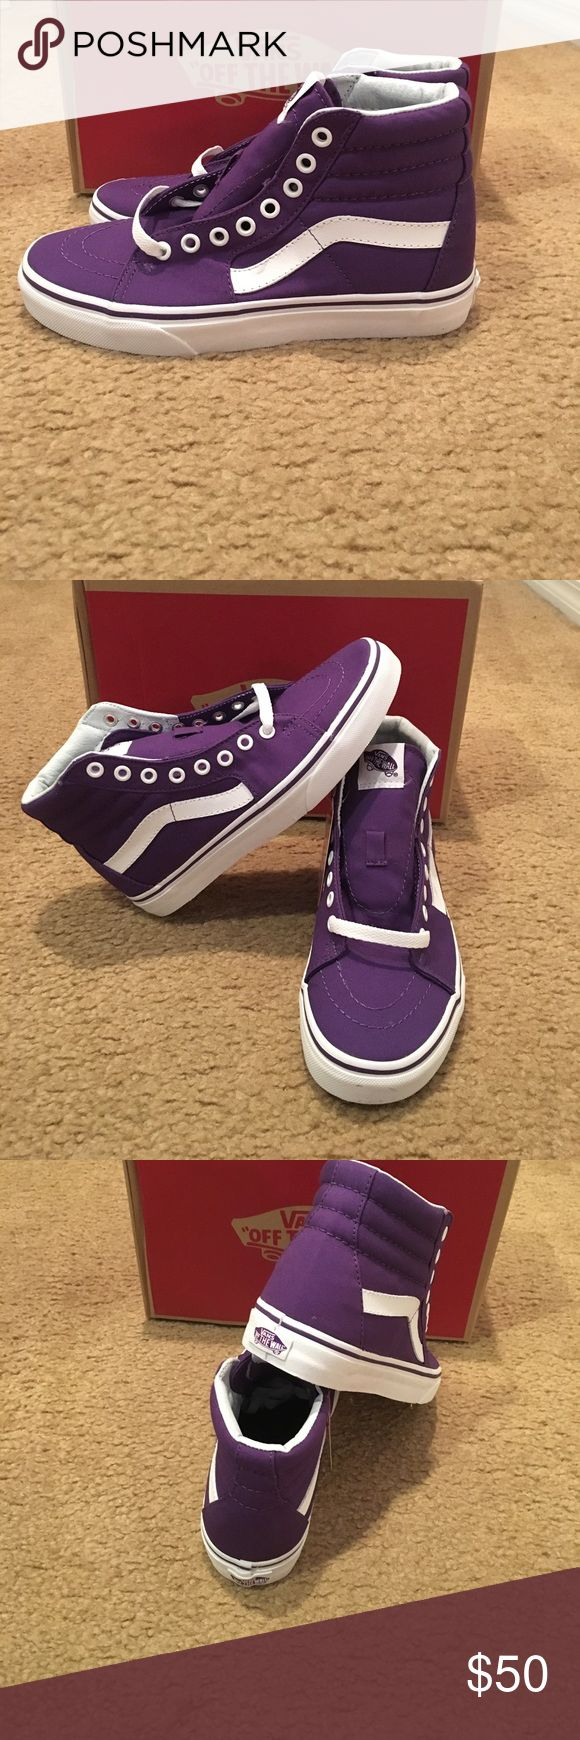 Vans Sk8-Hi Canvas Imperial Palace Sneakers New in box. Purple/white Vans Shoes Sneakers